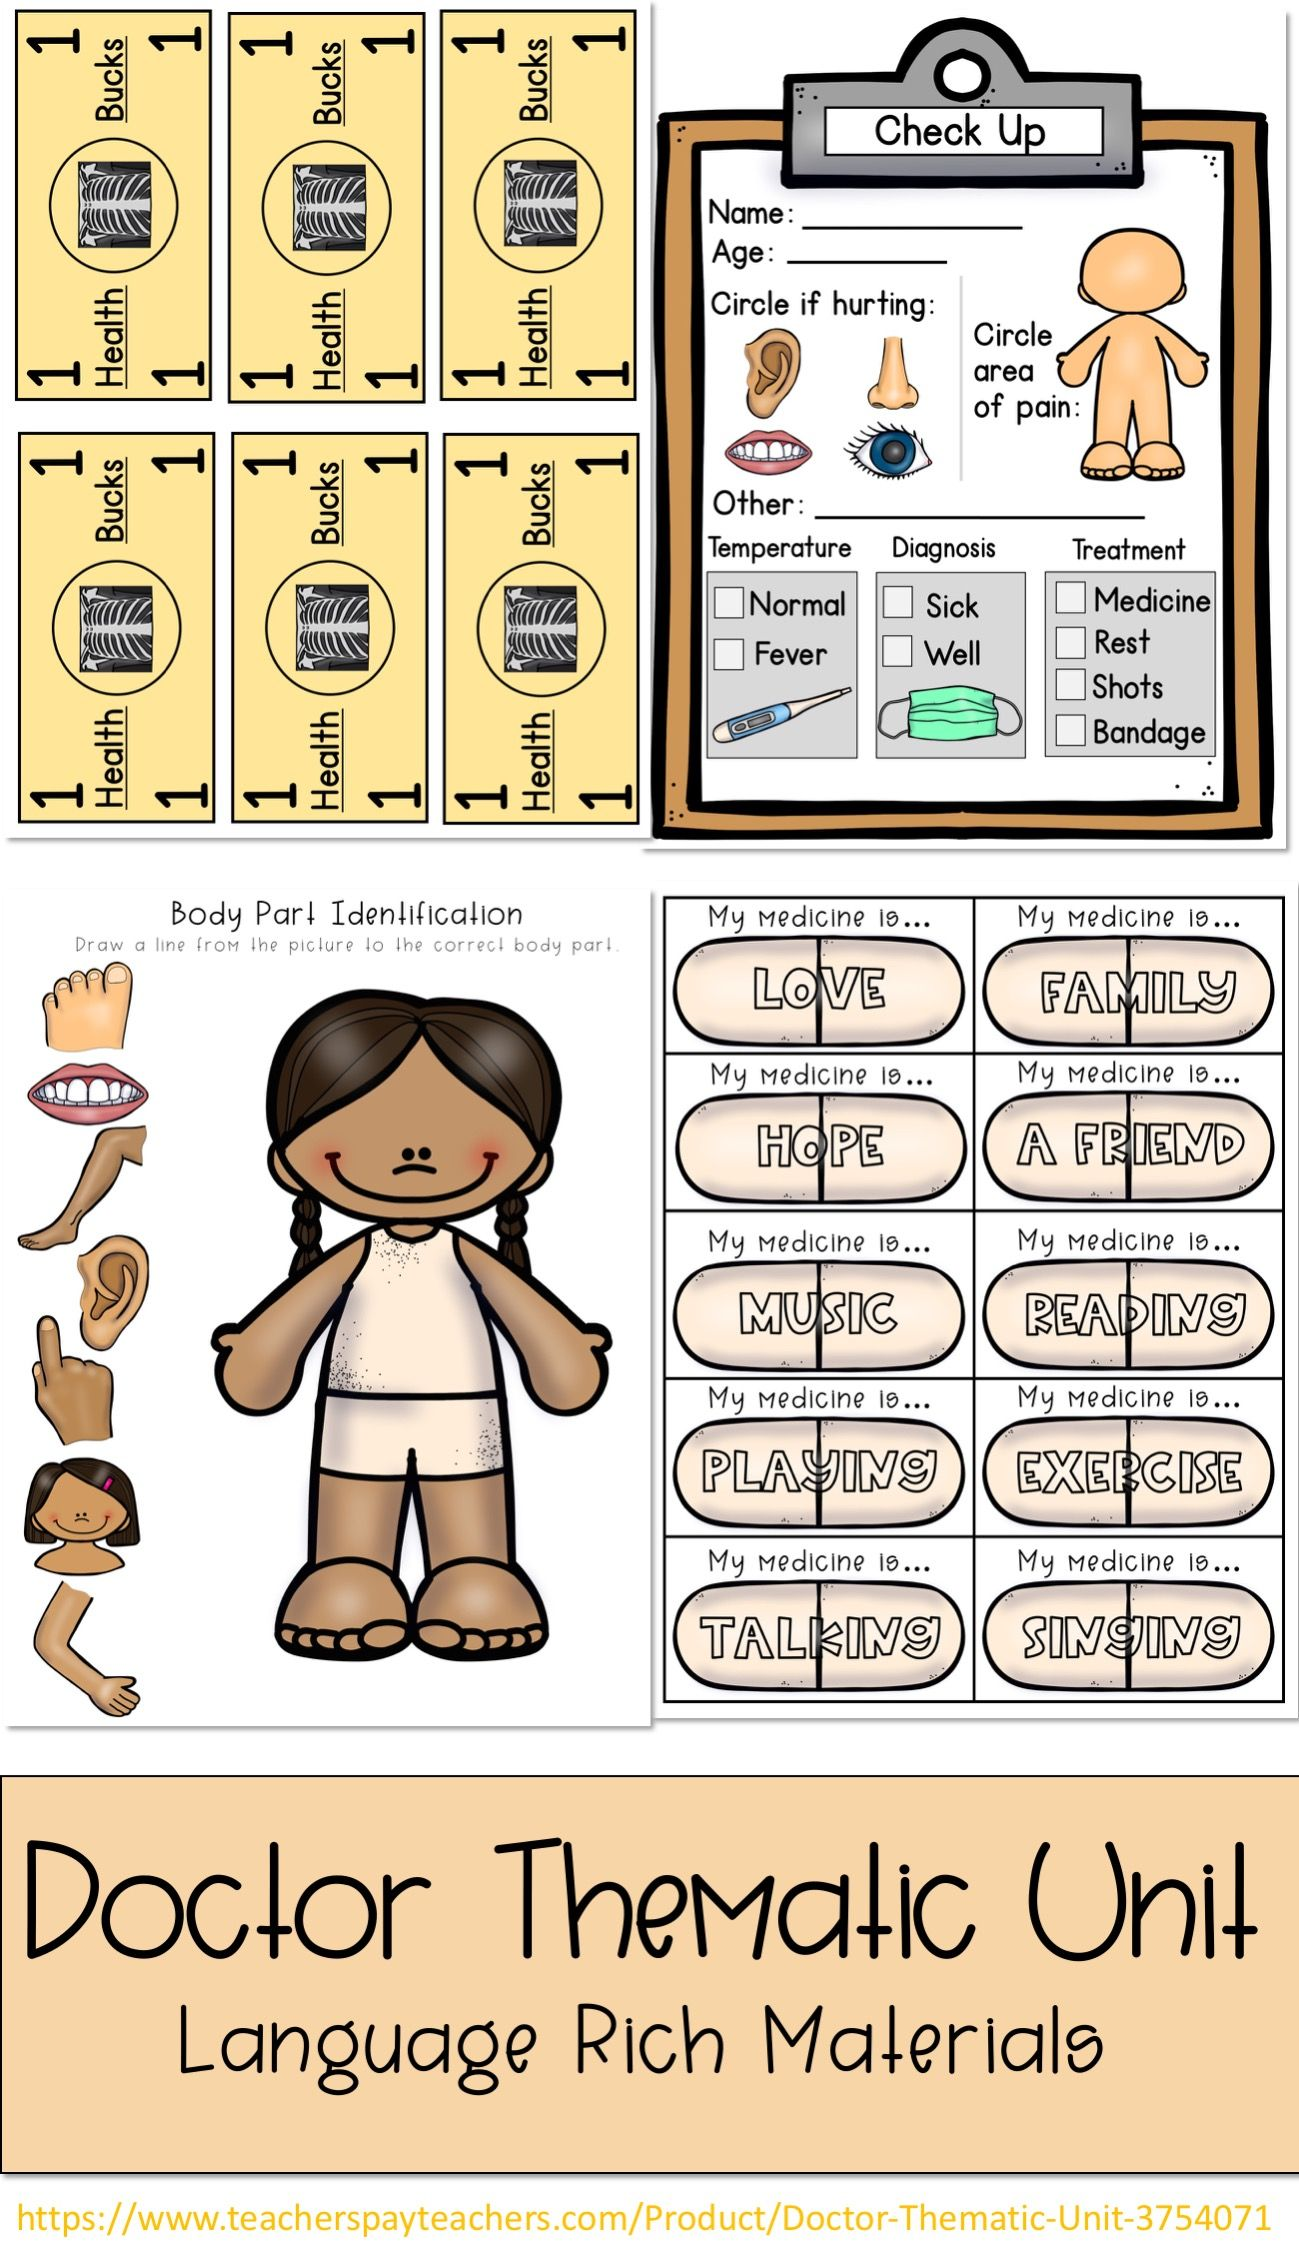 Language Rich Materials To Create Highly Contextual Environmen Speech Therapy Activities Preschool Receptive Language Activities Expressive Language Activities [ 2249 x 1299 Pixel ]